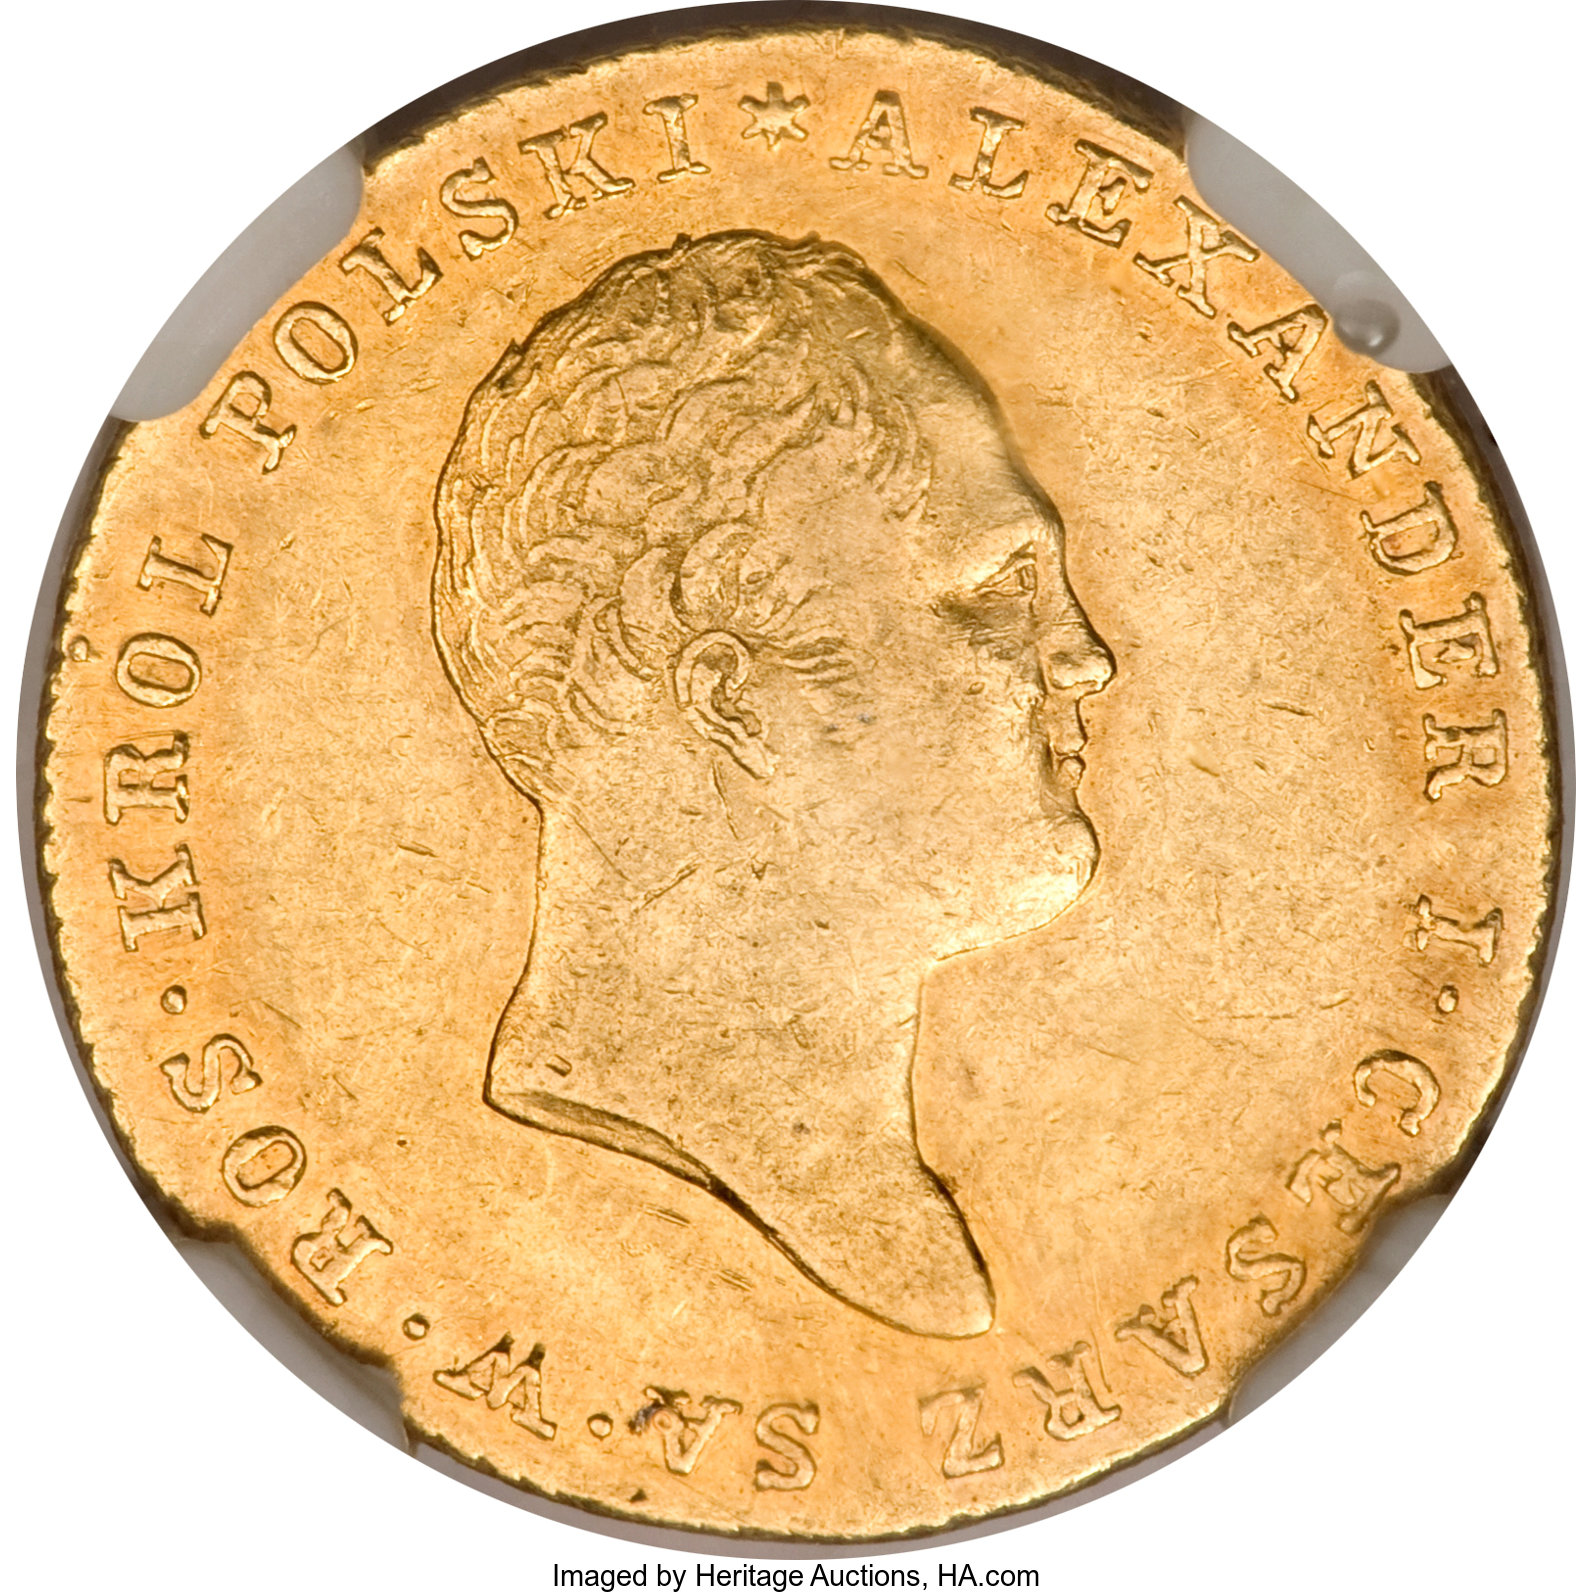 Poland: Alexander I of Russia gold 25 Zlotych 1818-IB,    Poland